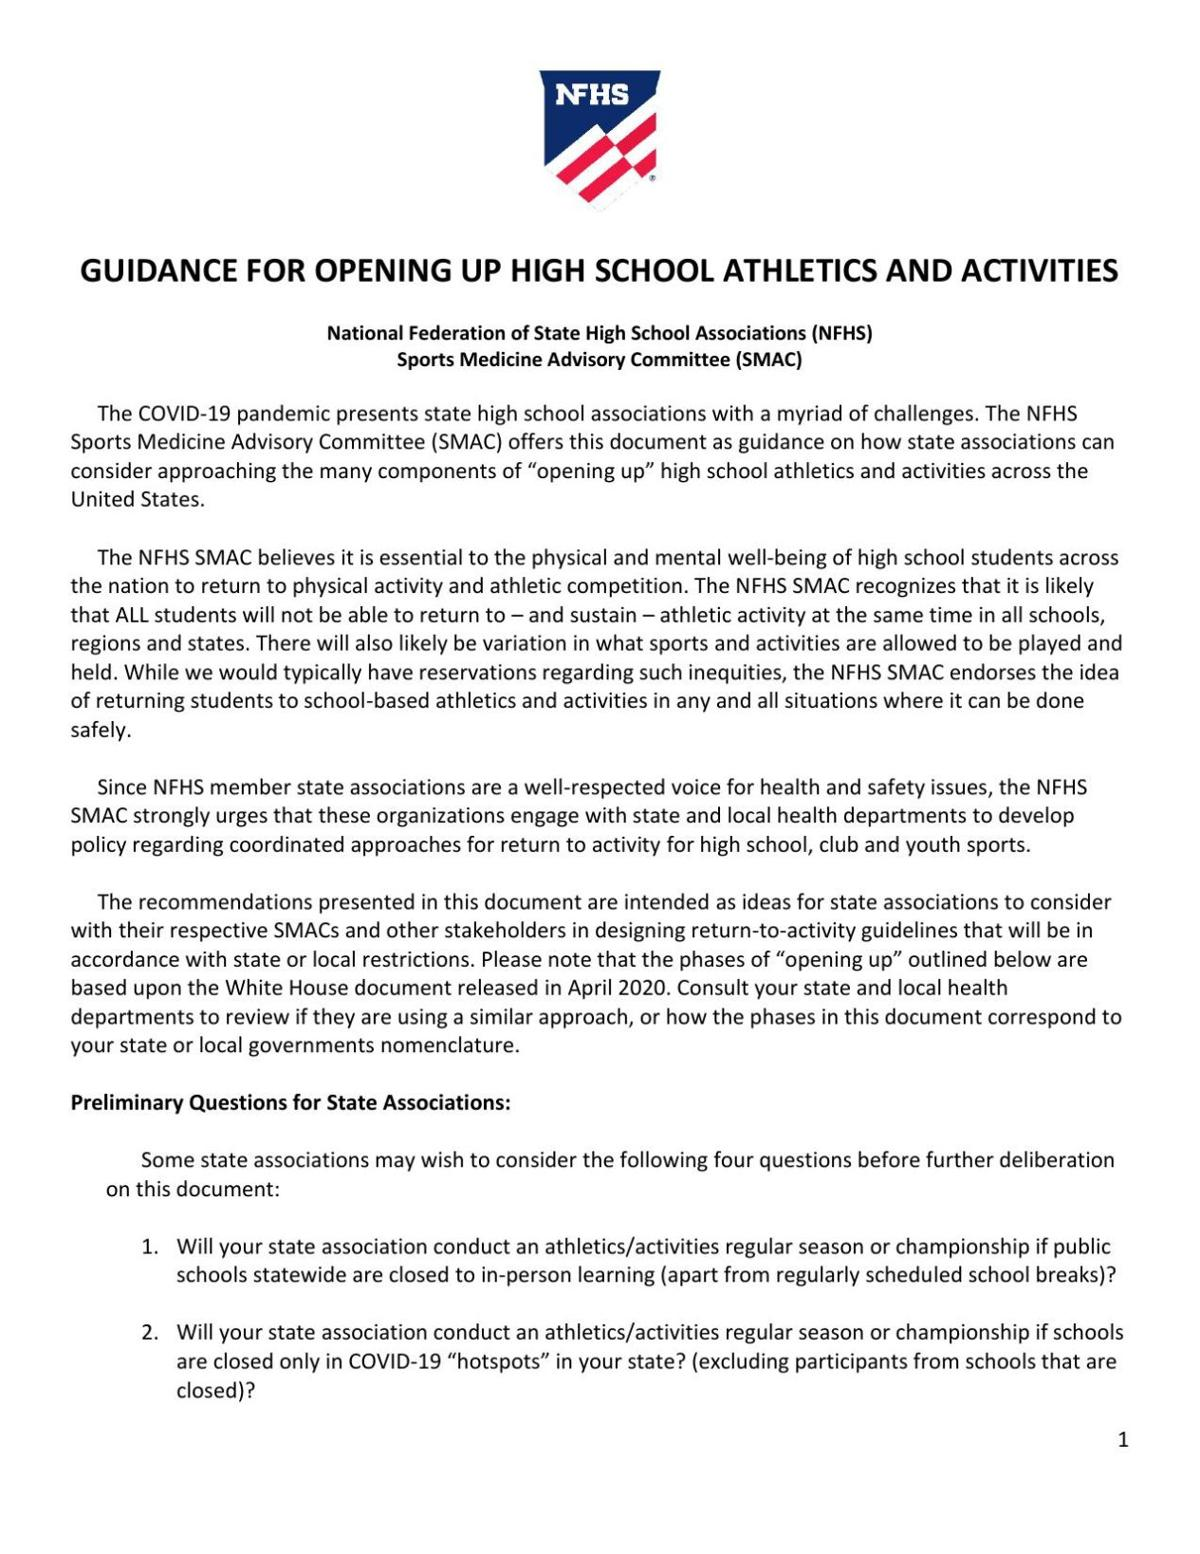 NFHS Guidelines for High School Sports